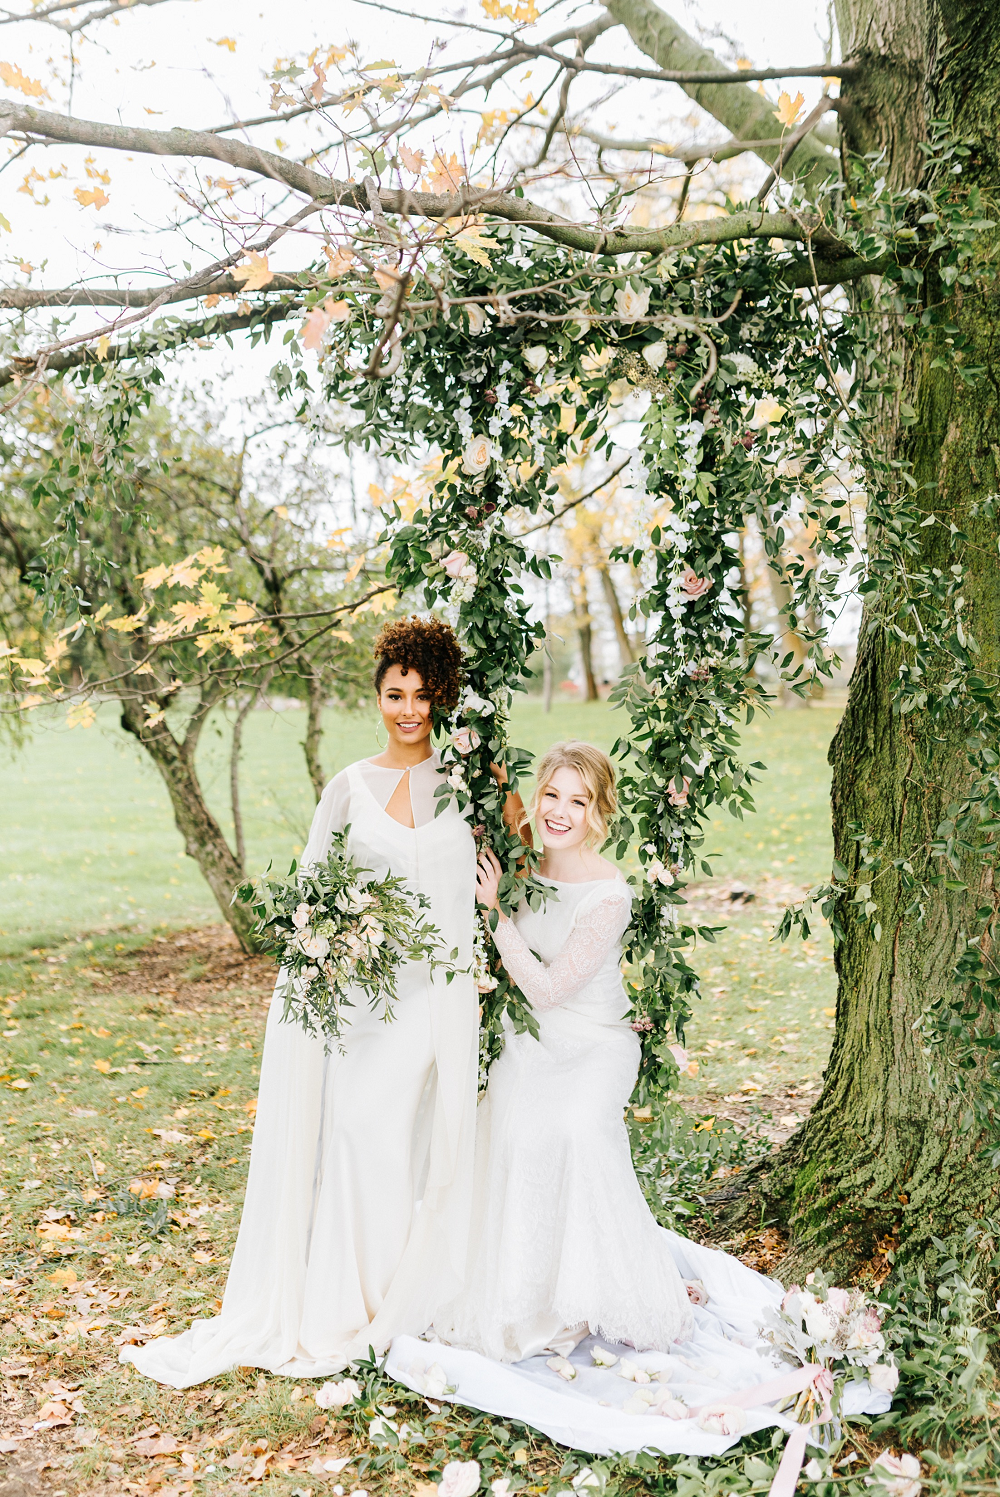 Lush Greenery Wedding Inspired Styled Shoot at Cornman Farms Brides with Flower Garland